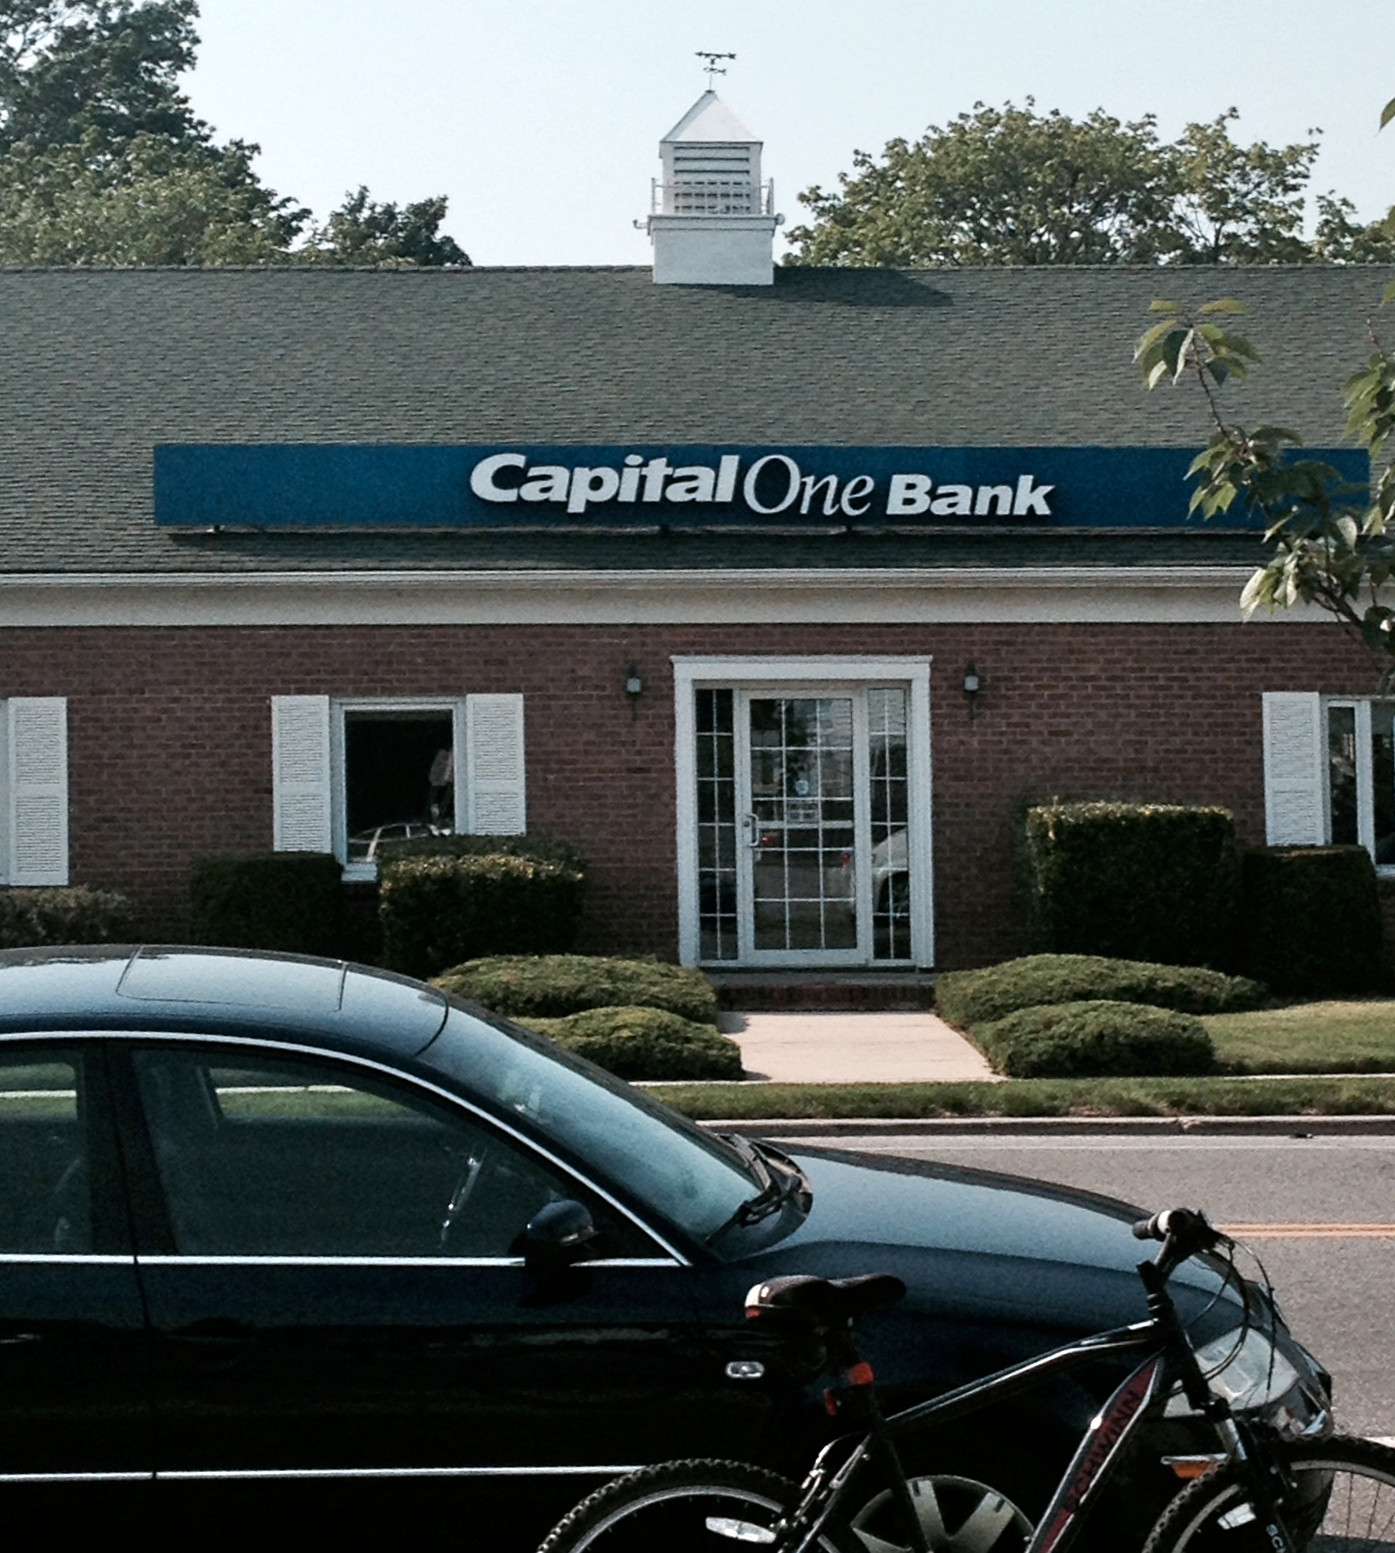 This Capital One branch was robbed Tuesday afternoon. The photo was taken shortly after the robbery.